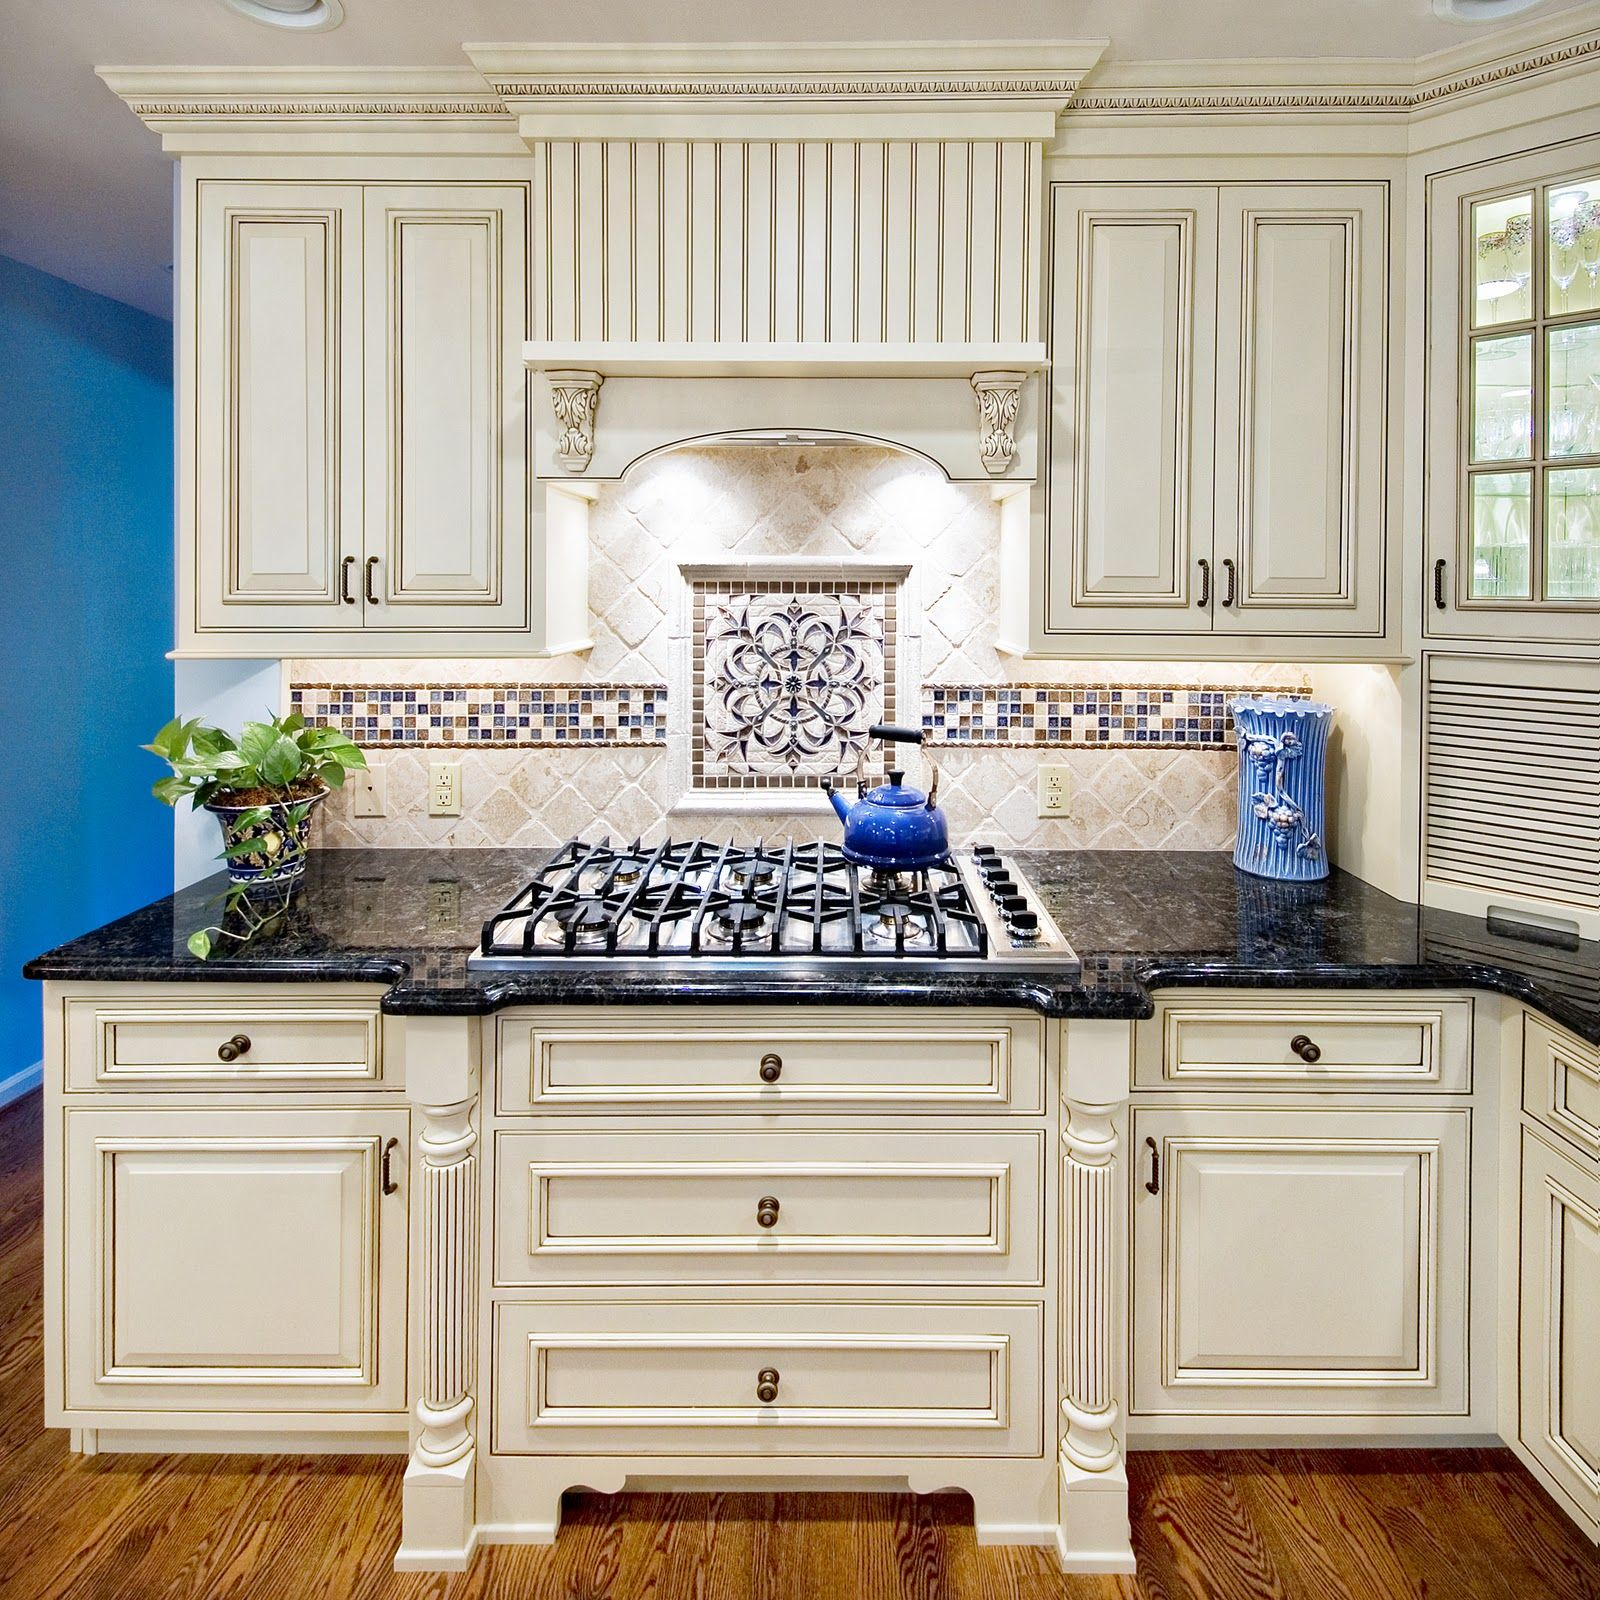 Kitchen Backsplash Blue mexican tile with granite | white kitchen cabinets with black